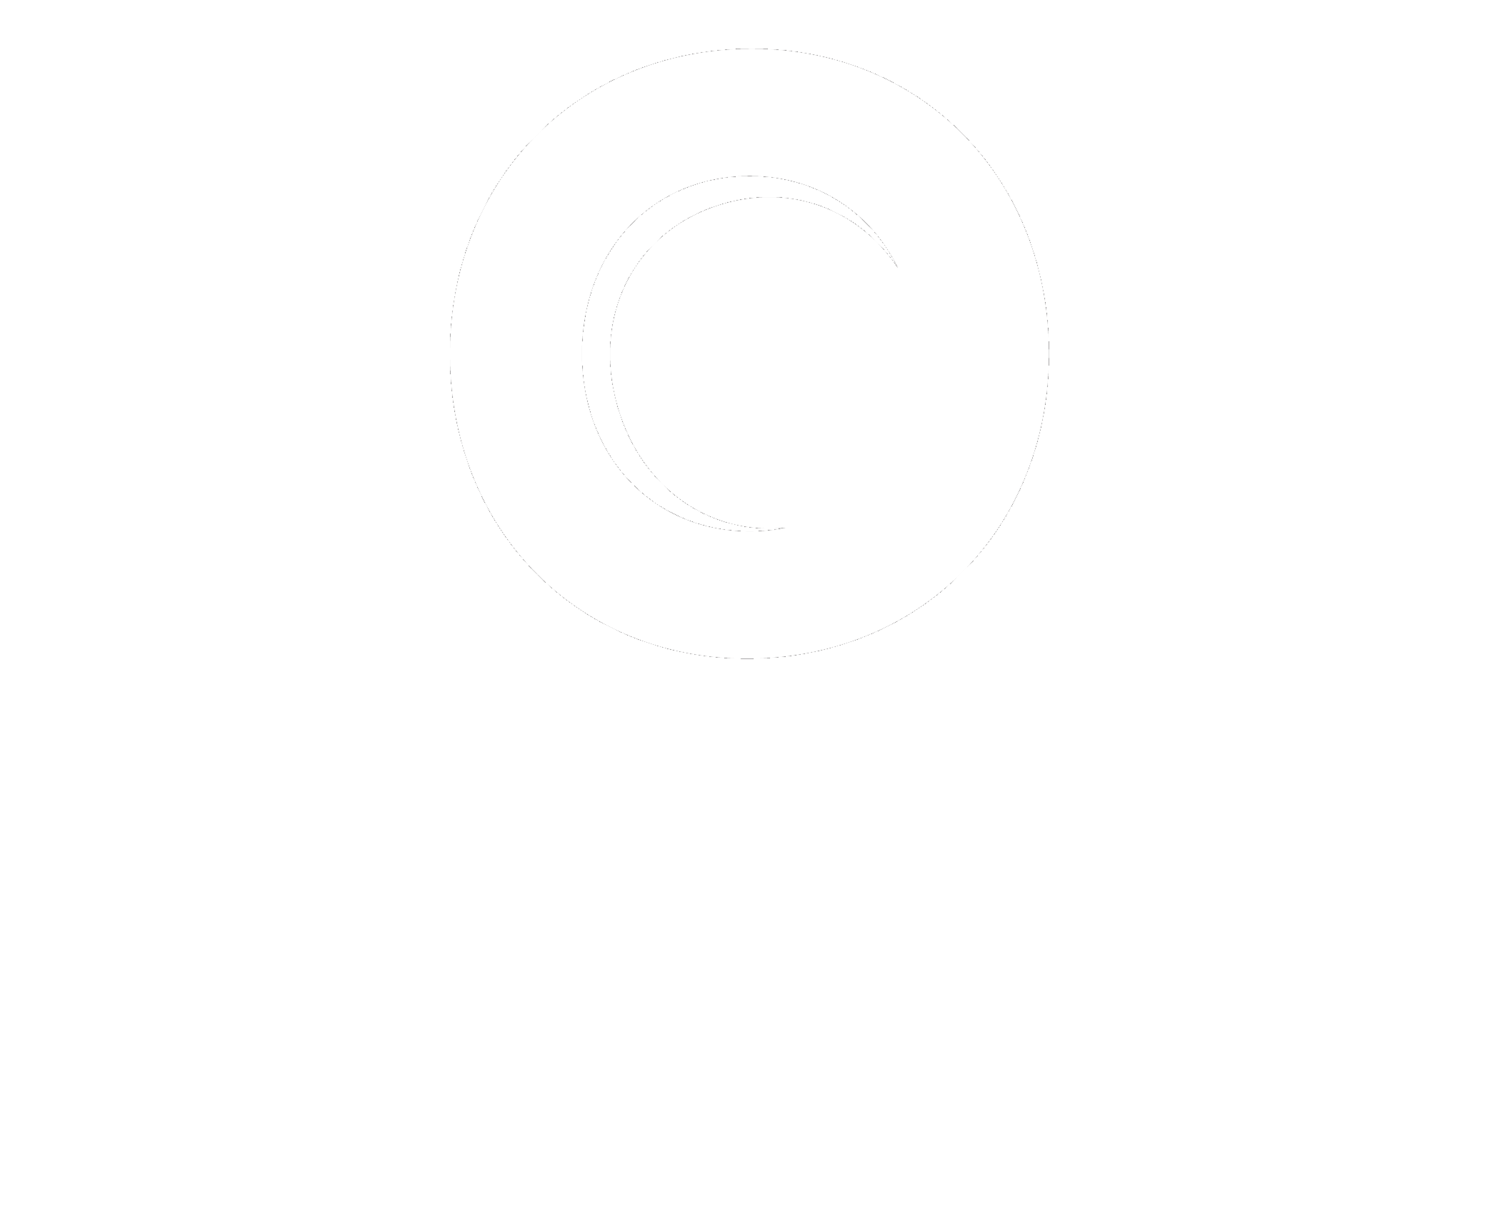 Opferman Mechanical Services